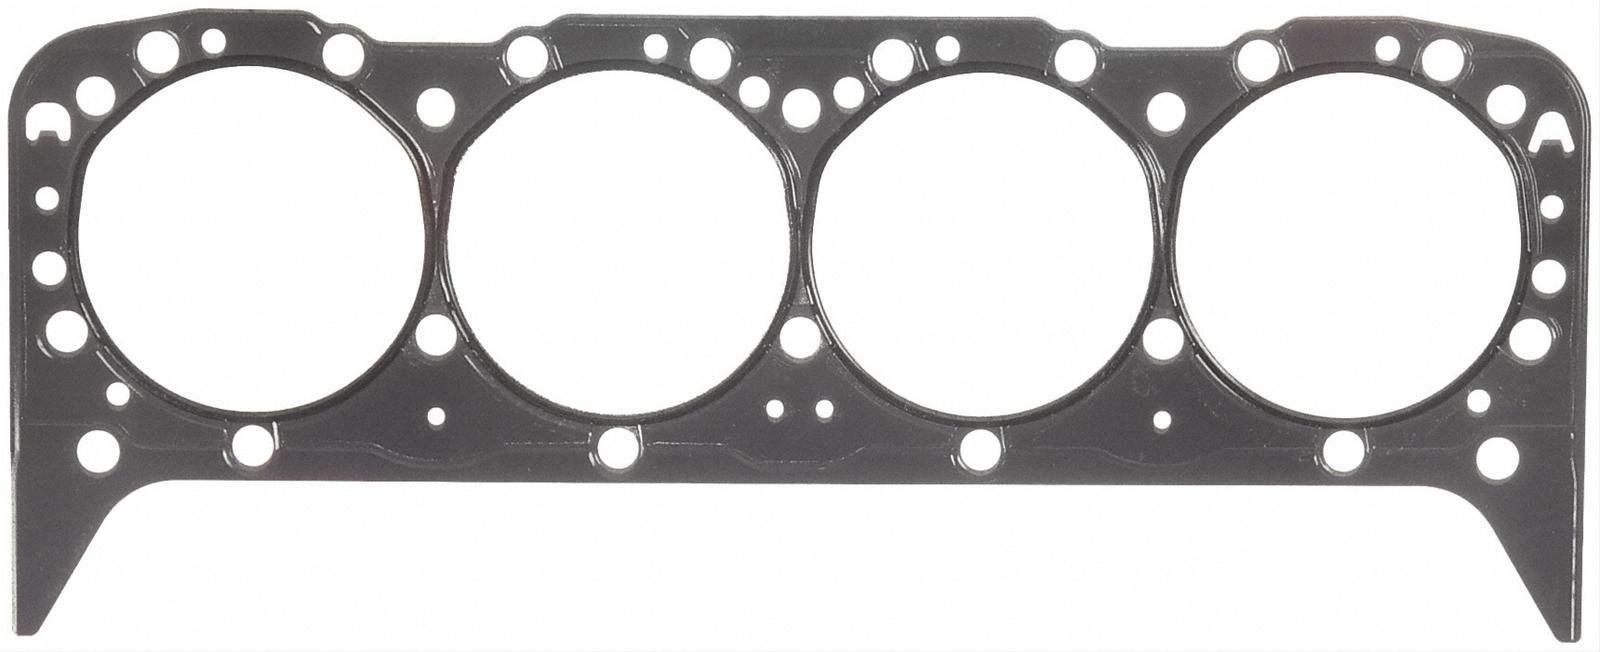 Fel Pro Performance Head Gaskets Sfl1094 Free Shipping On Orders 1942 Chevy Wiring Over 49 At Summit Racing